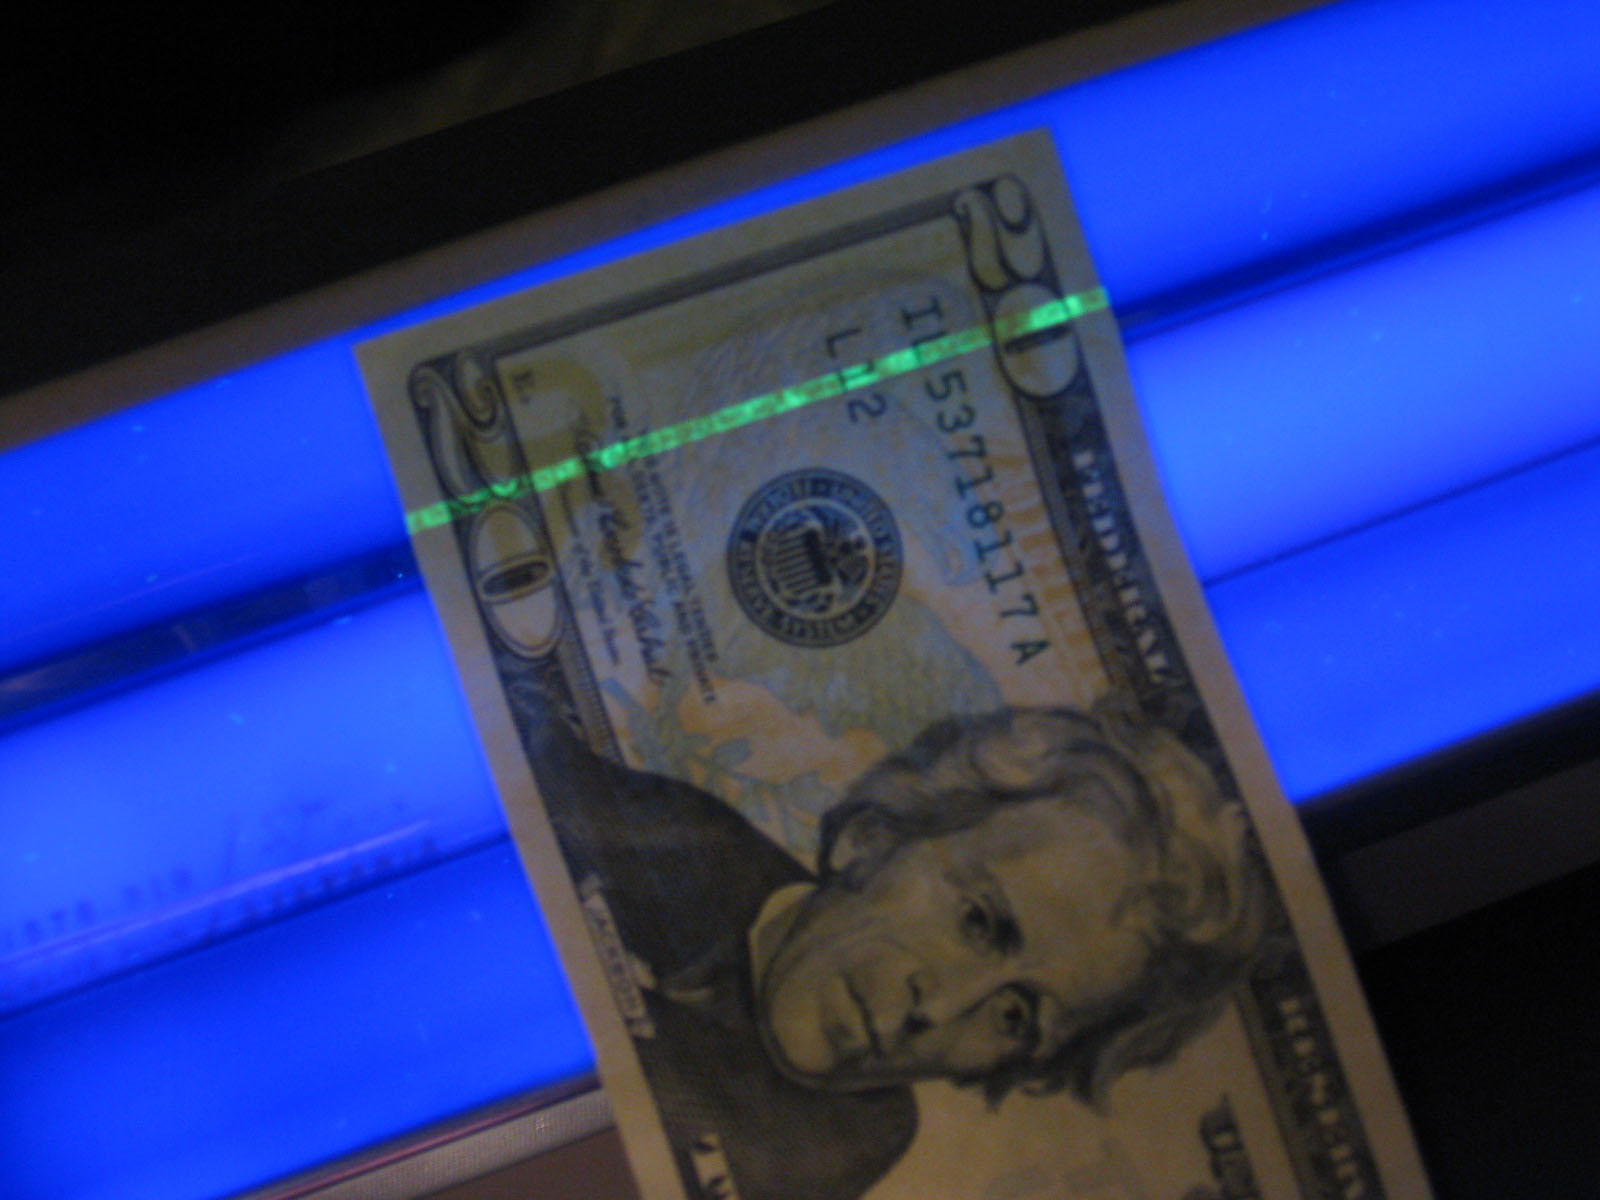 Glowing Security Strip in Currency (Scott Nazelrod)